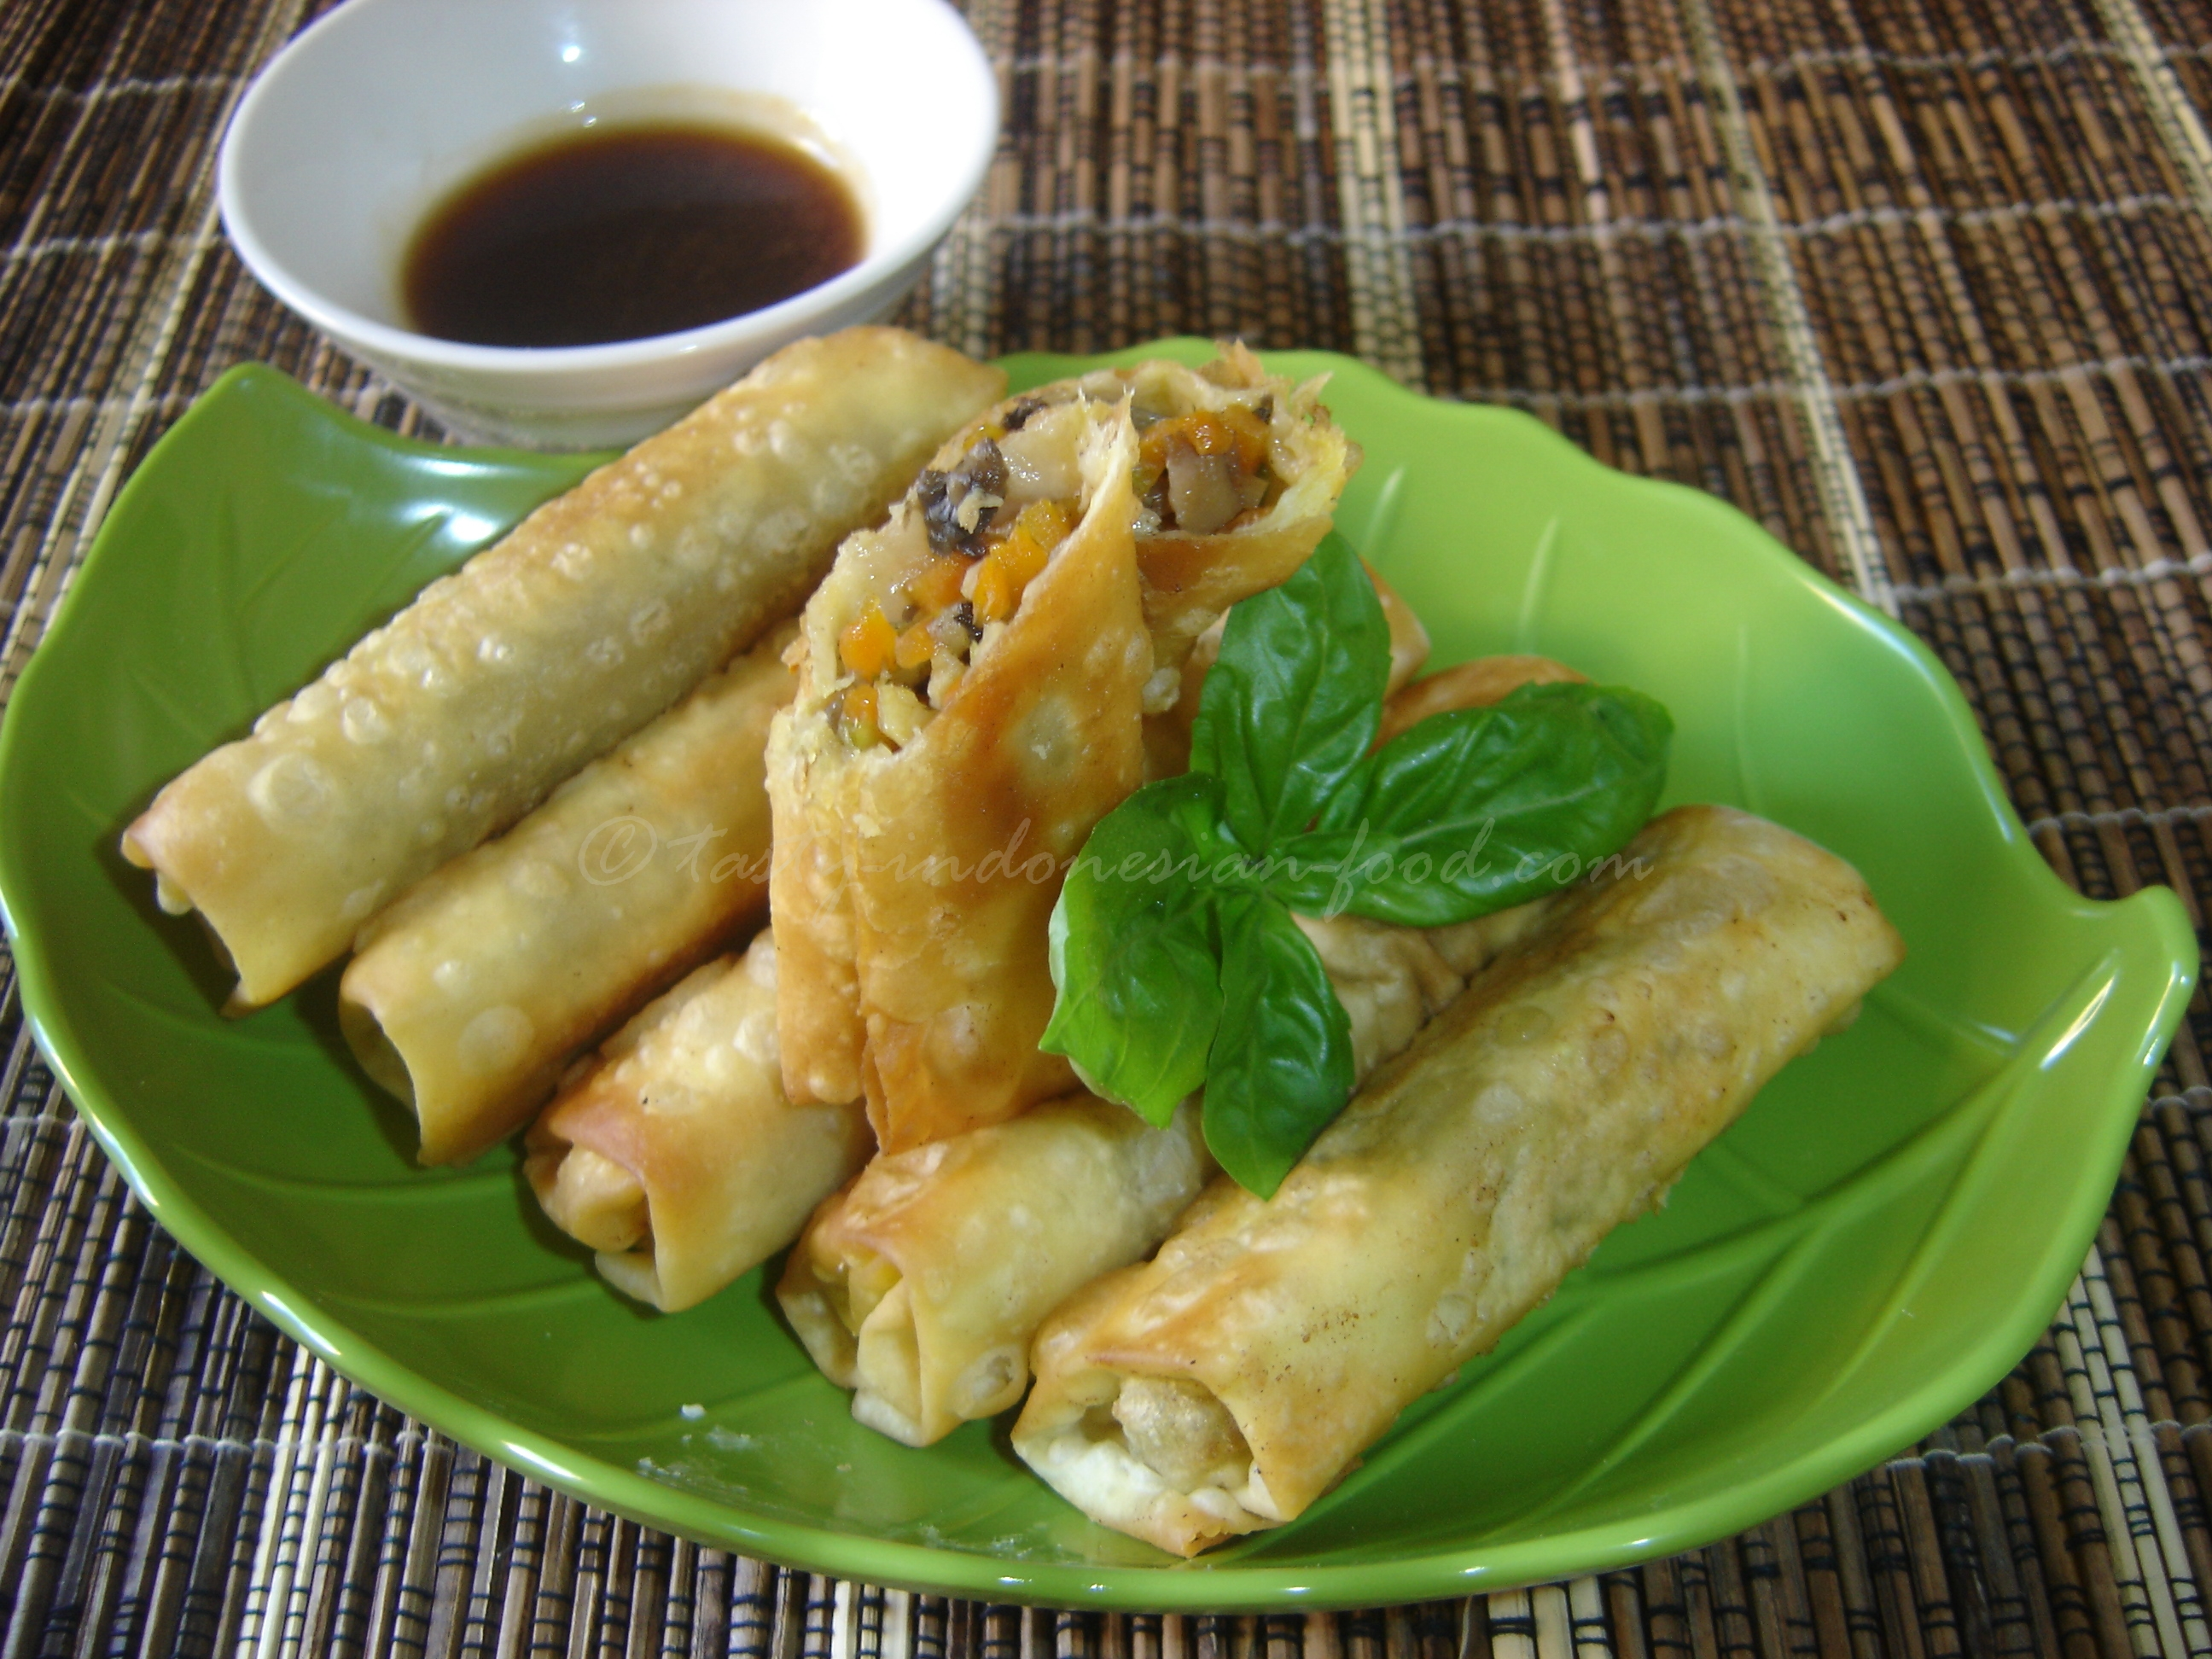 Tasty indonesian food lumpia ayam this is a great choice of easy tasty appetizer for your party its really tasty in indonesia you can find it easily in some restaurants or food stalls in forumfinder Gallery